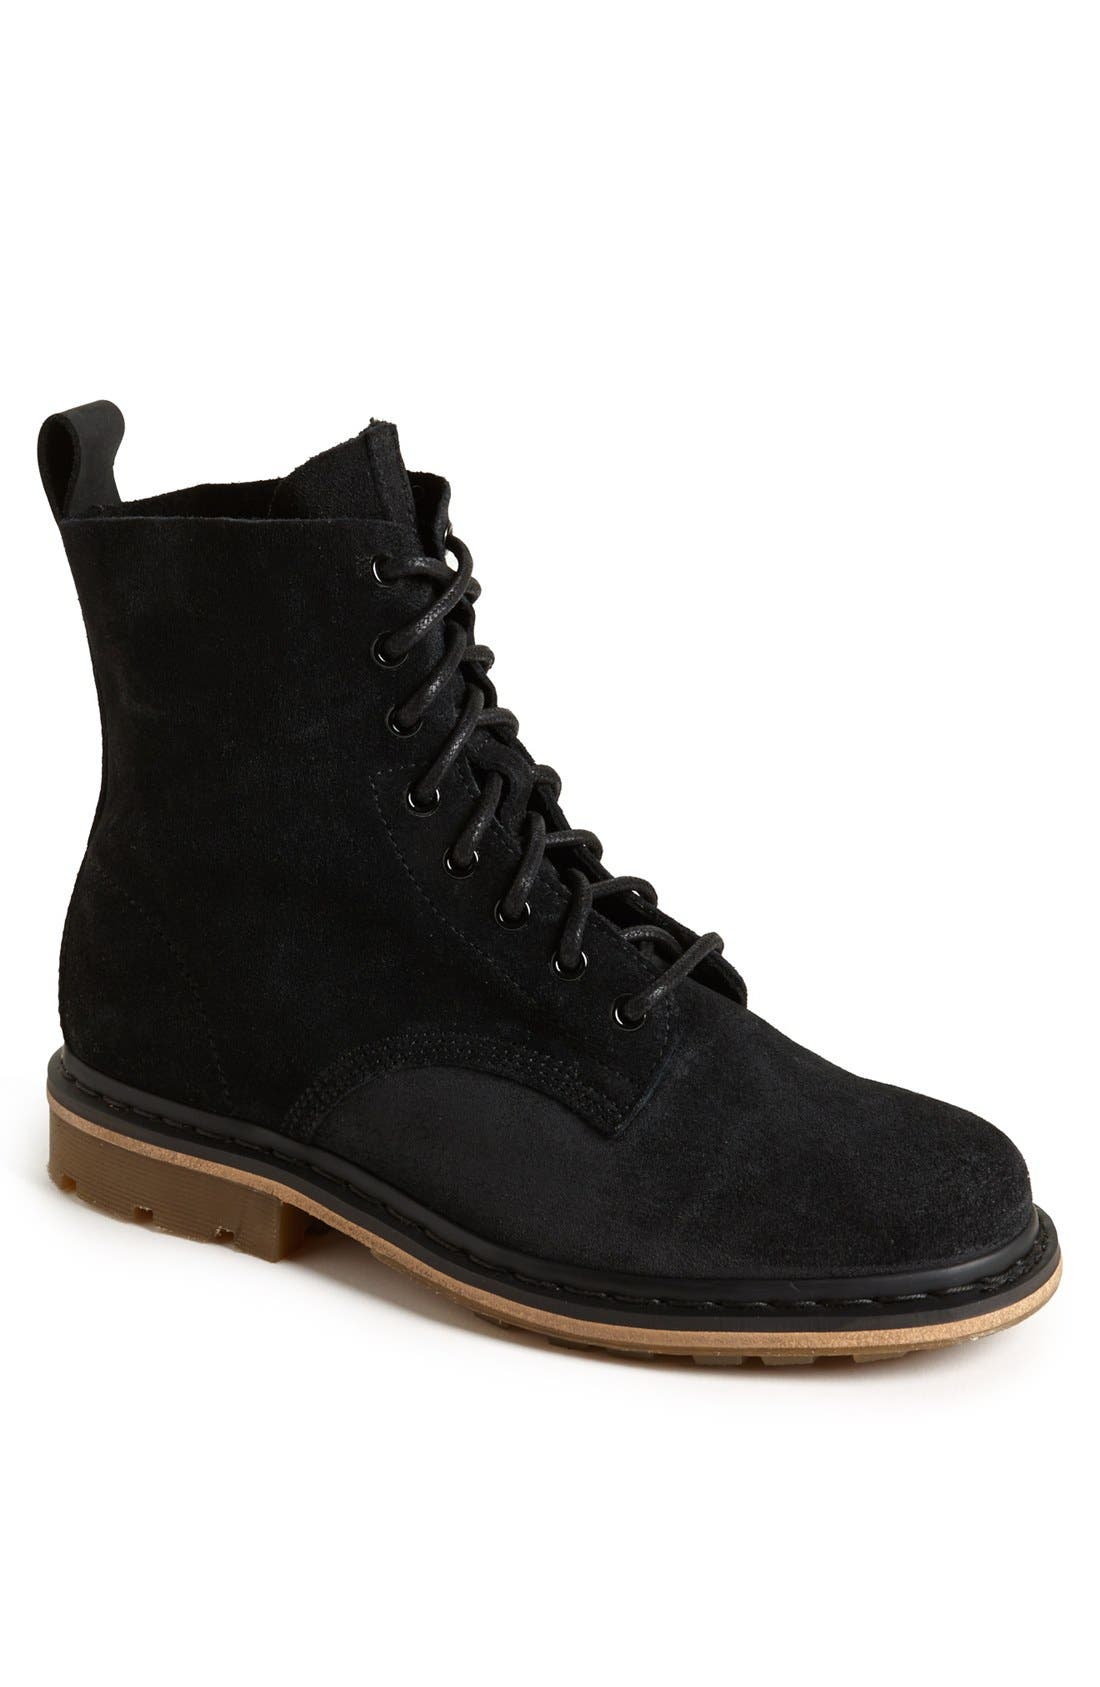 Main Image - Dr. Martens 'Nero' Suede Boot